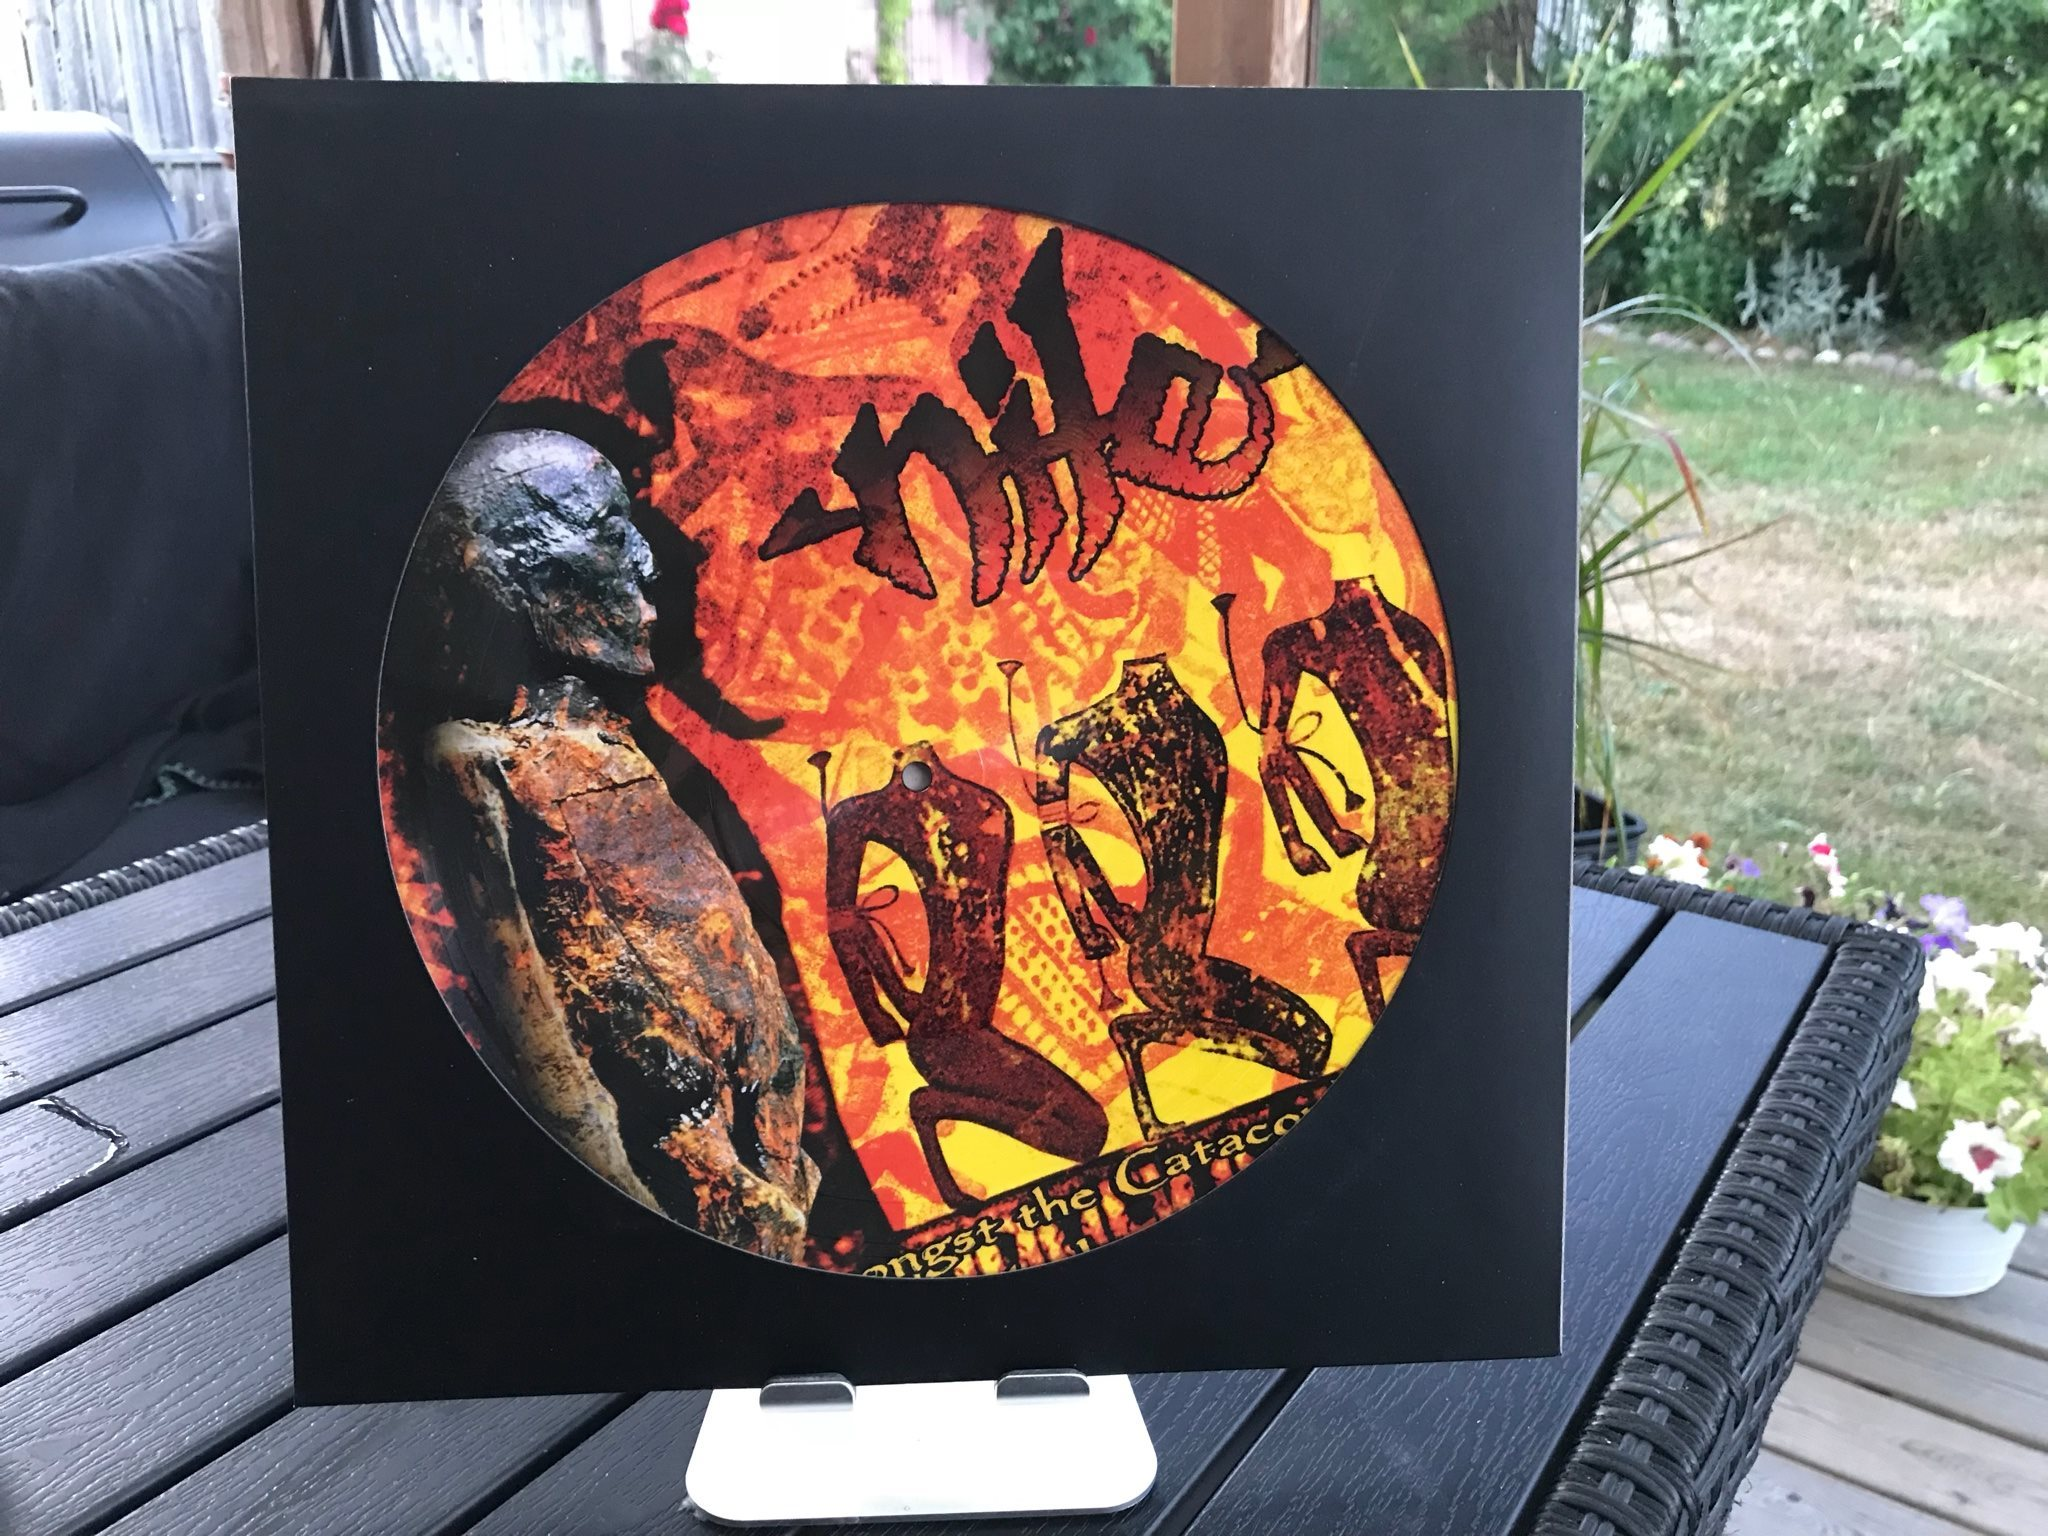 Nile - Amongst The Catacombs Of Nephren-Ka (PICTURE DISC)